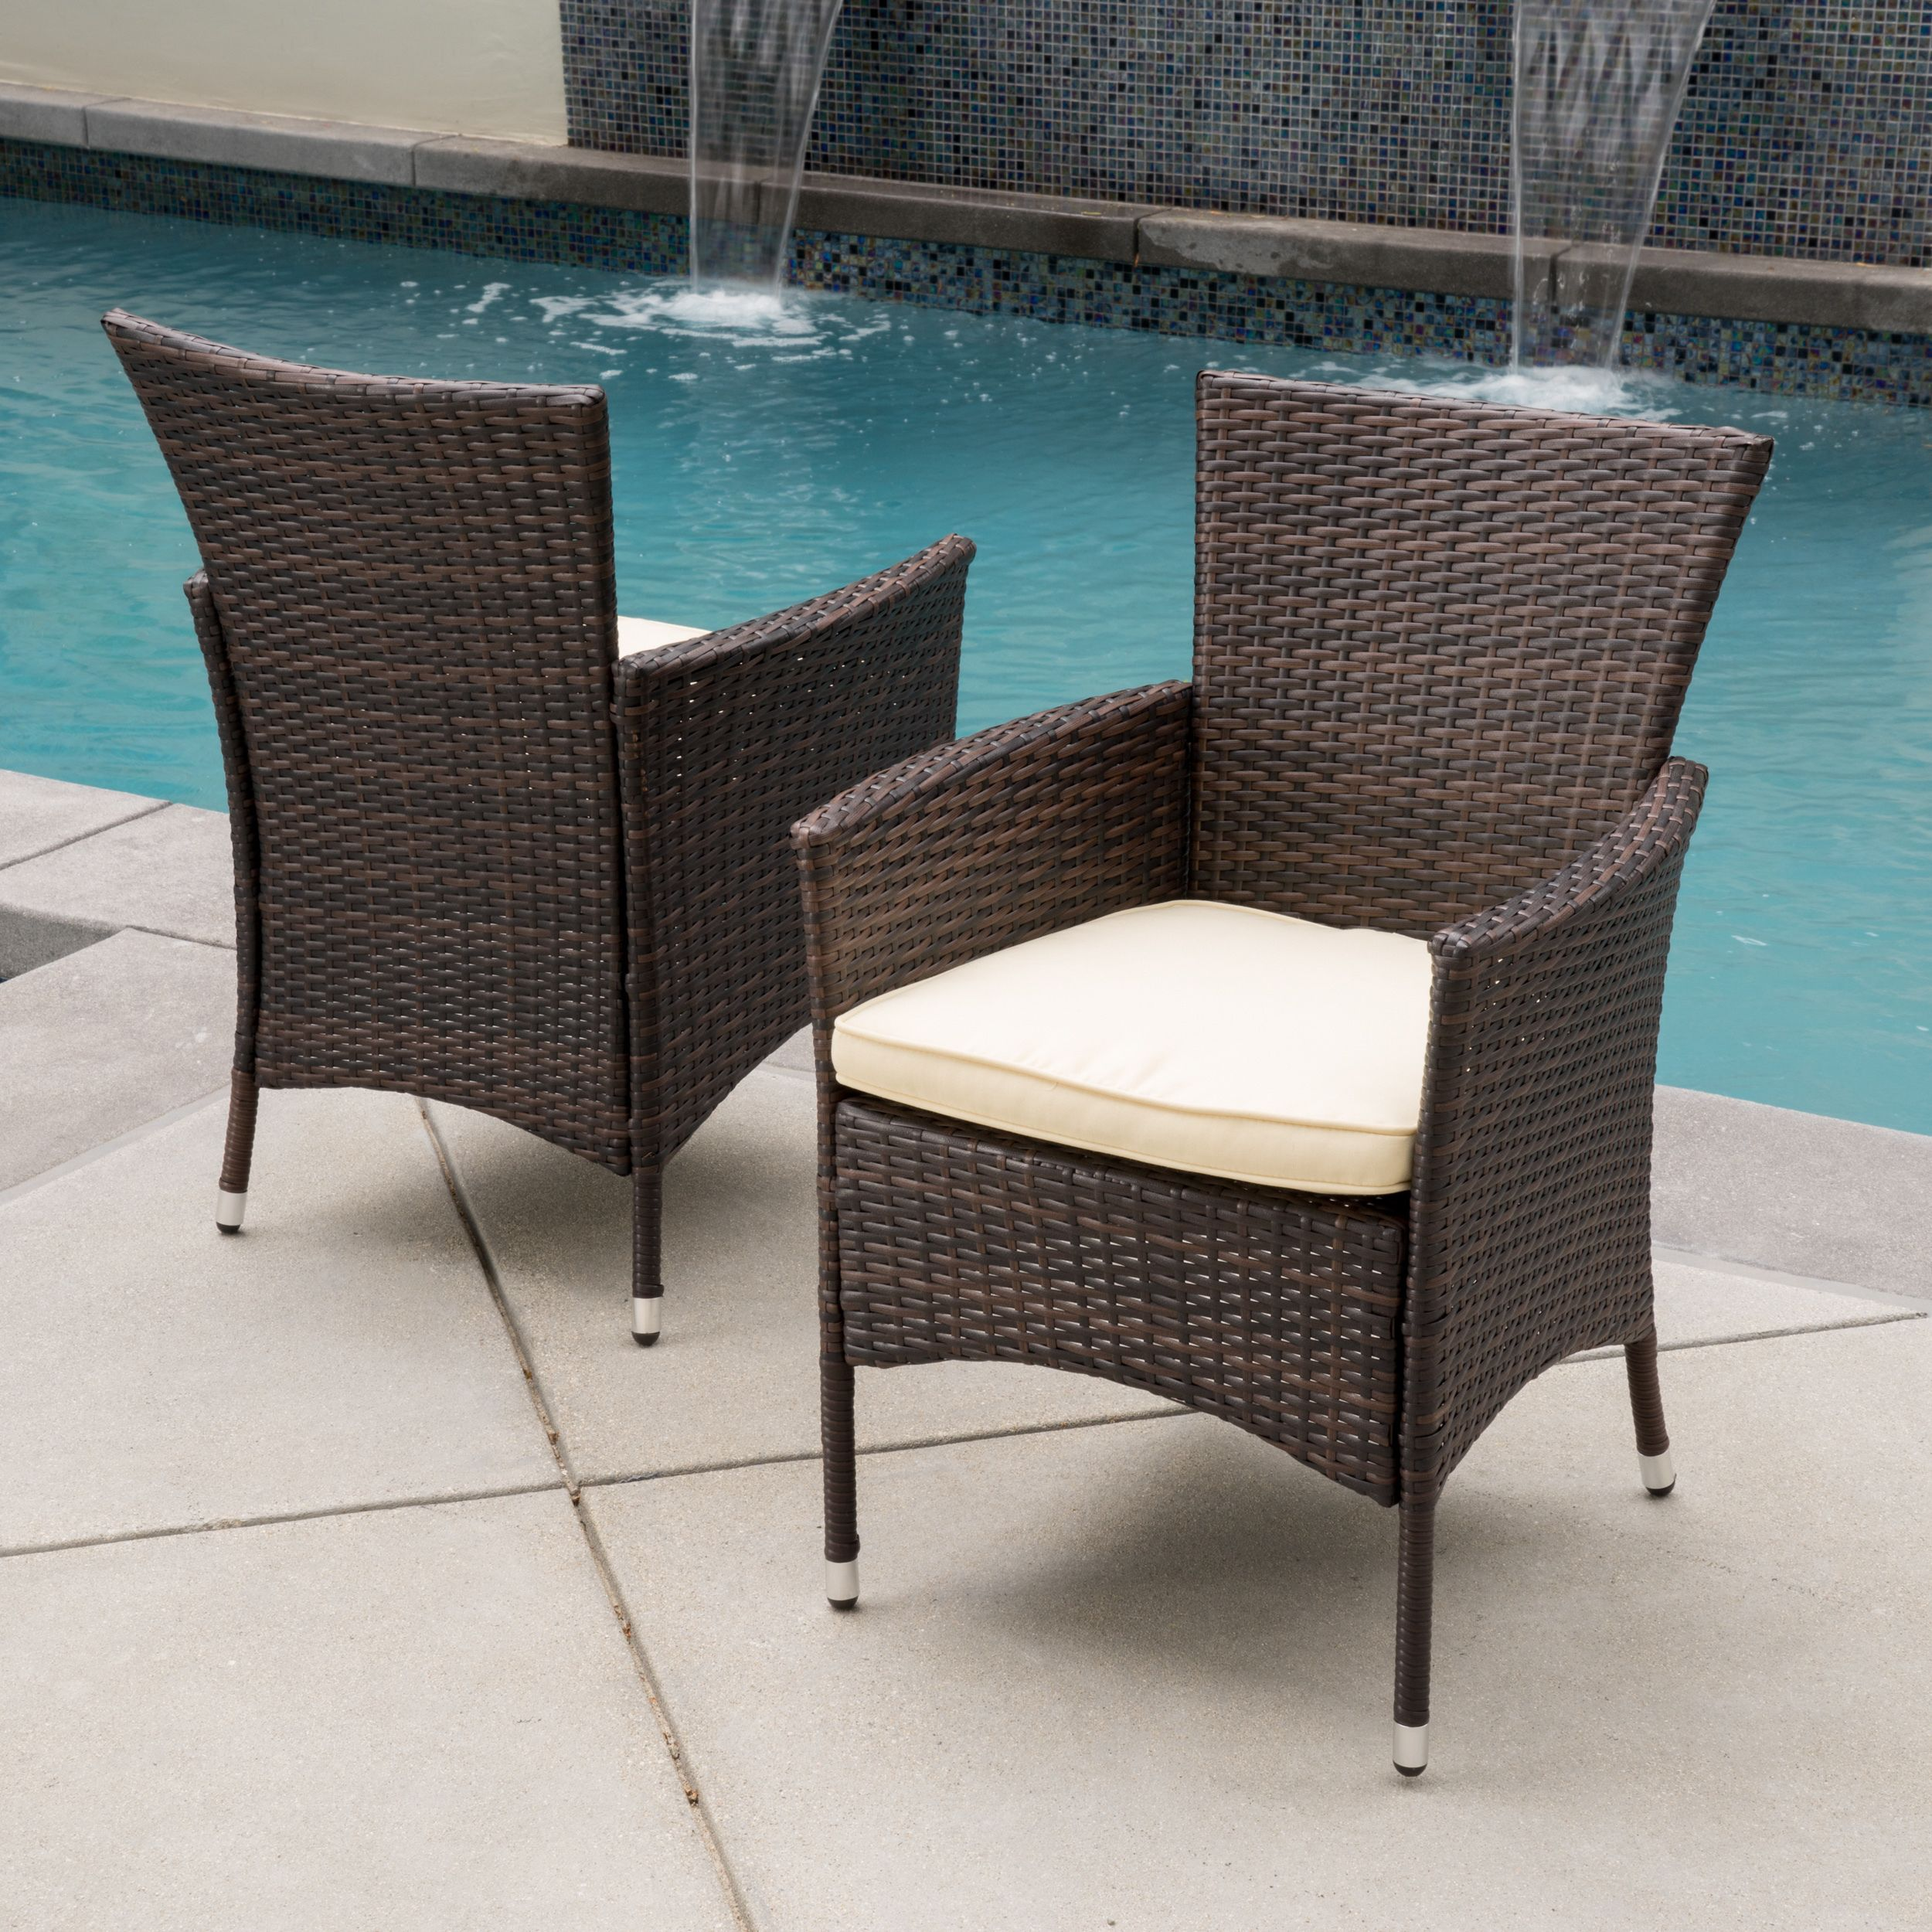 Outdoor wicker dining chairs - Malta Outdoor Wicker Dining Chair With Cushion Set Of 2 By Christopher Knight Home